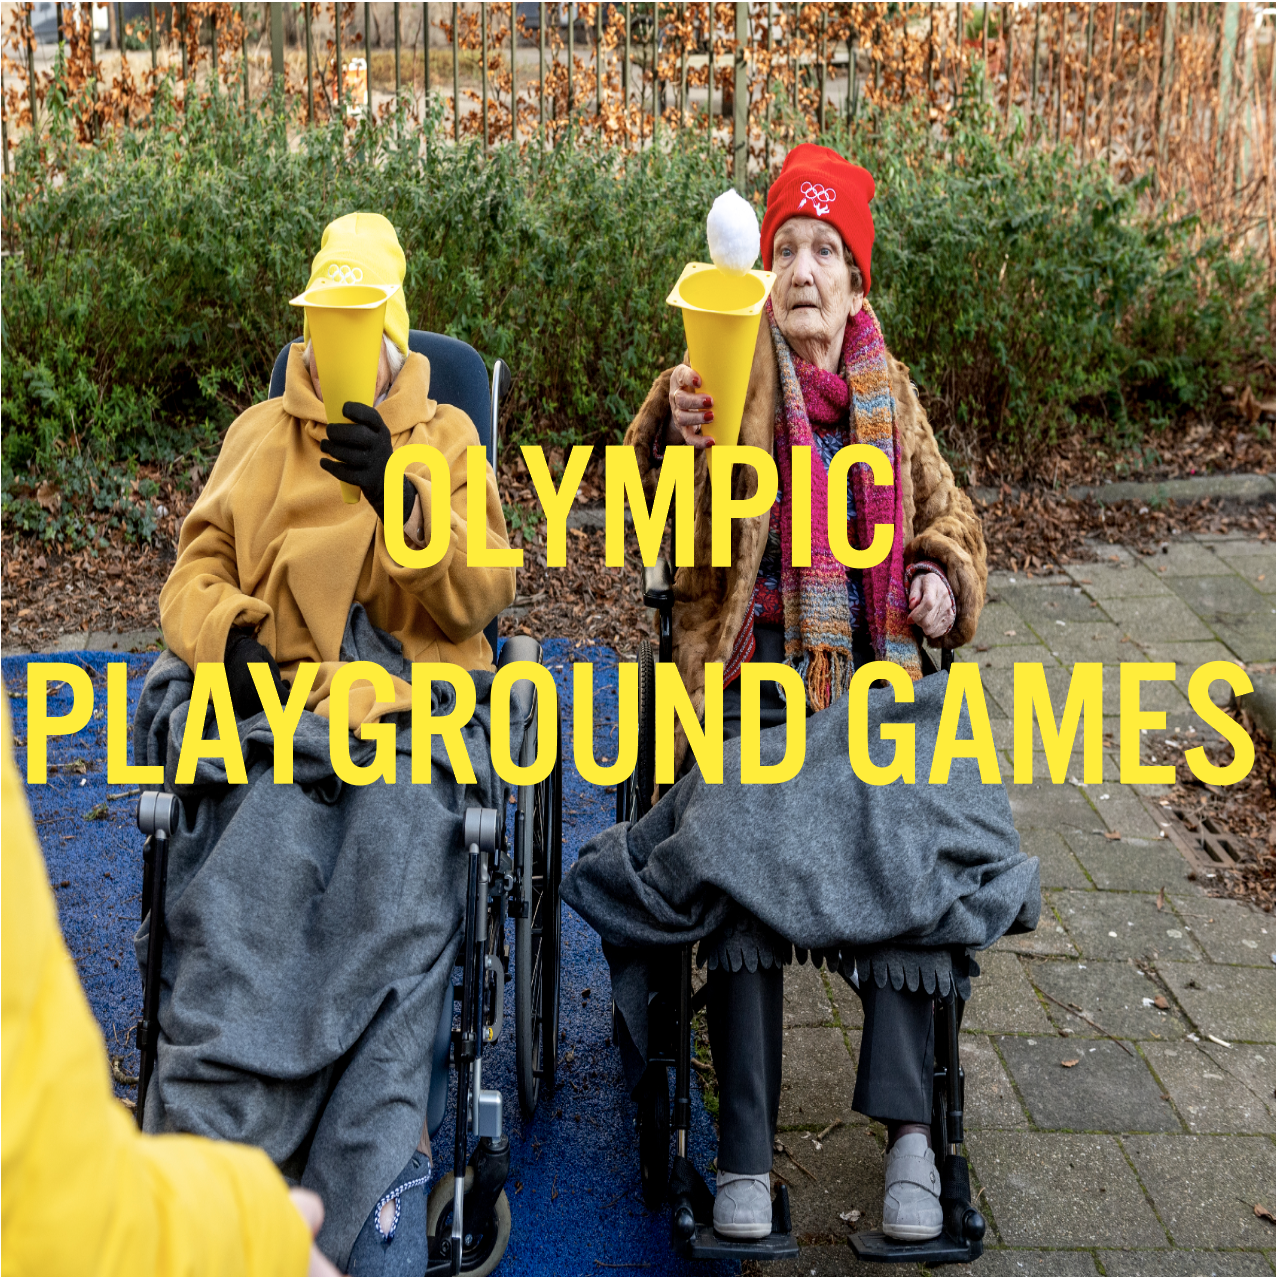 Olympic Playground Games2.png